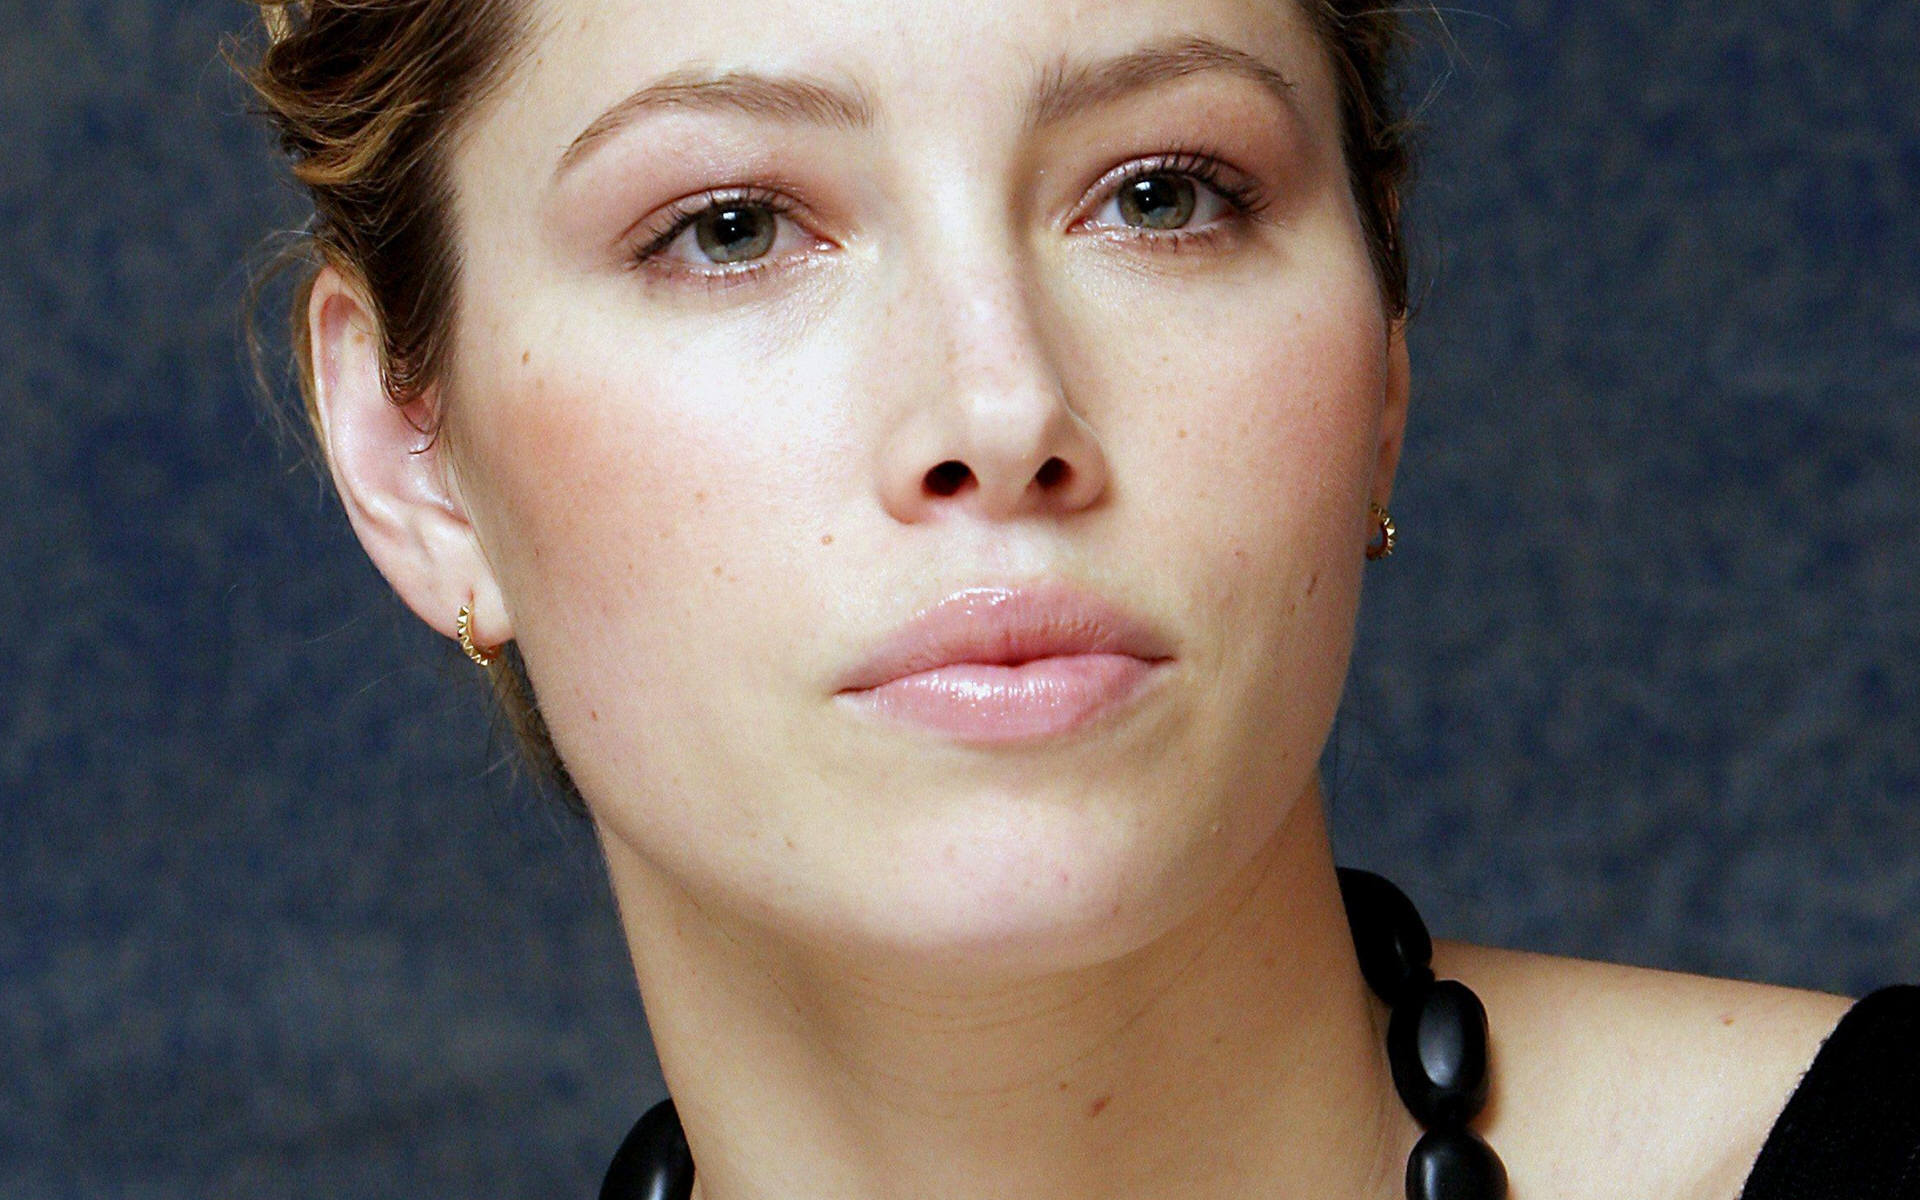 jessica biel theplacejessica biel instagram, jessica biel 2016, jessica biel 2017, jessica biel wikipedia, jessica biel young, jessica biel кинопоиск, jessica biel justin timberlake wedding, jessica biel films, jessica biel фильмы, jessica biel son, jessica biel fan site, jessica biel listal, jessica biel 2015, jessica biel hair, jessica biel mad about the boy, jessica biel filmography, jessica biel theplace, jessica biel blade 3, jessica biel movie, jessica biel scarlett johansson